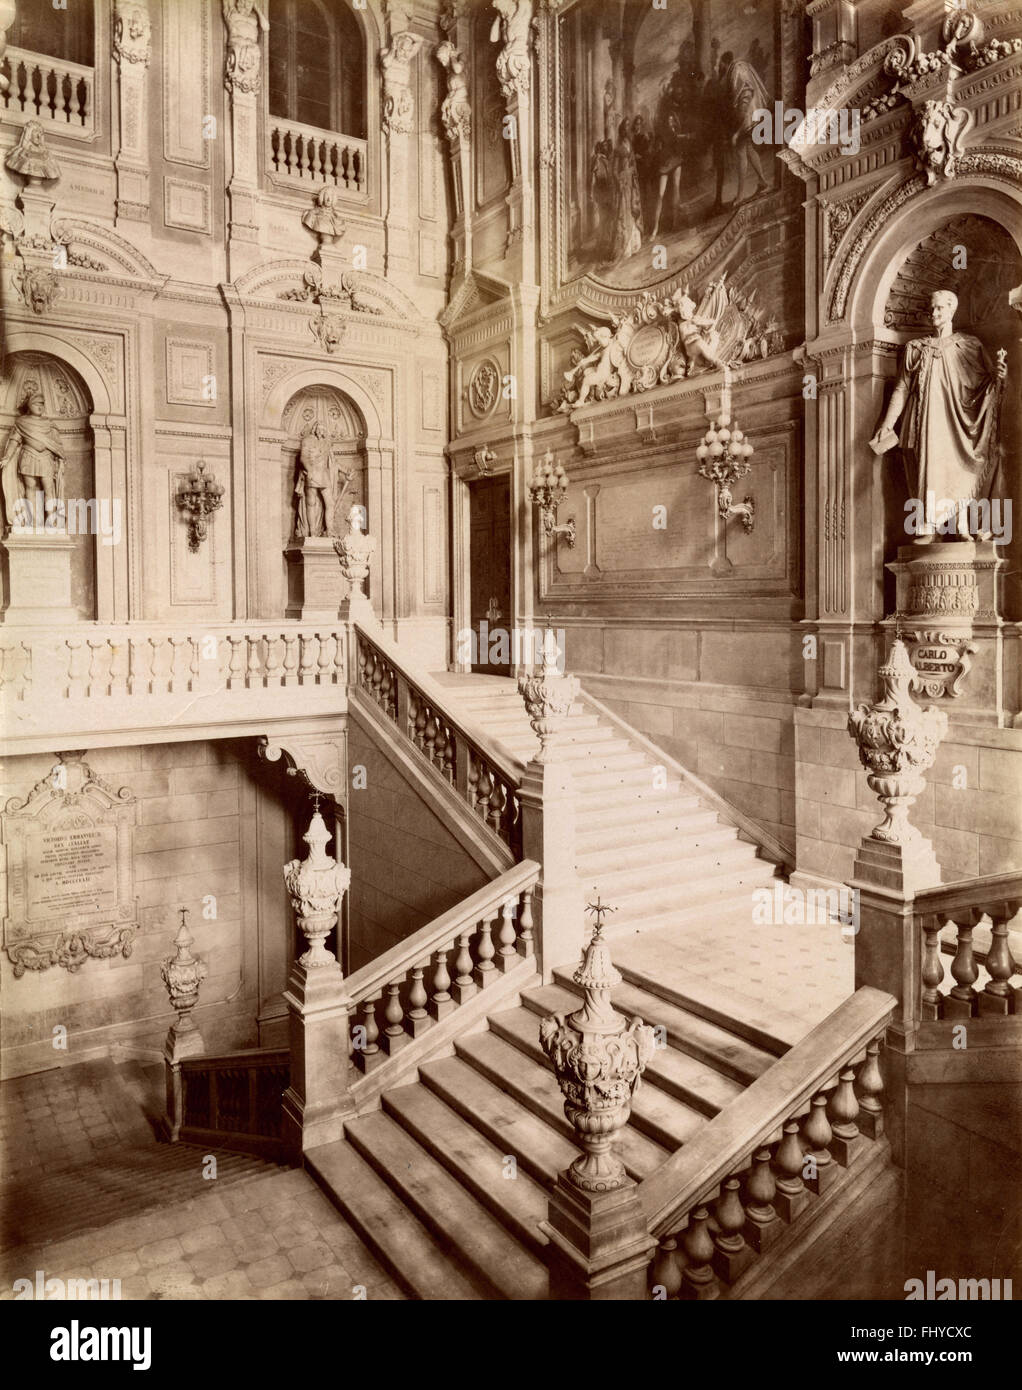 Staircase of honor, the Royal Palace, Turin, Italy - Stock Image